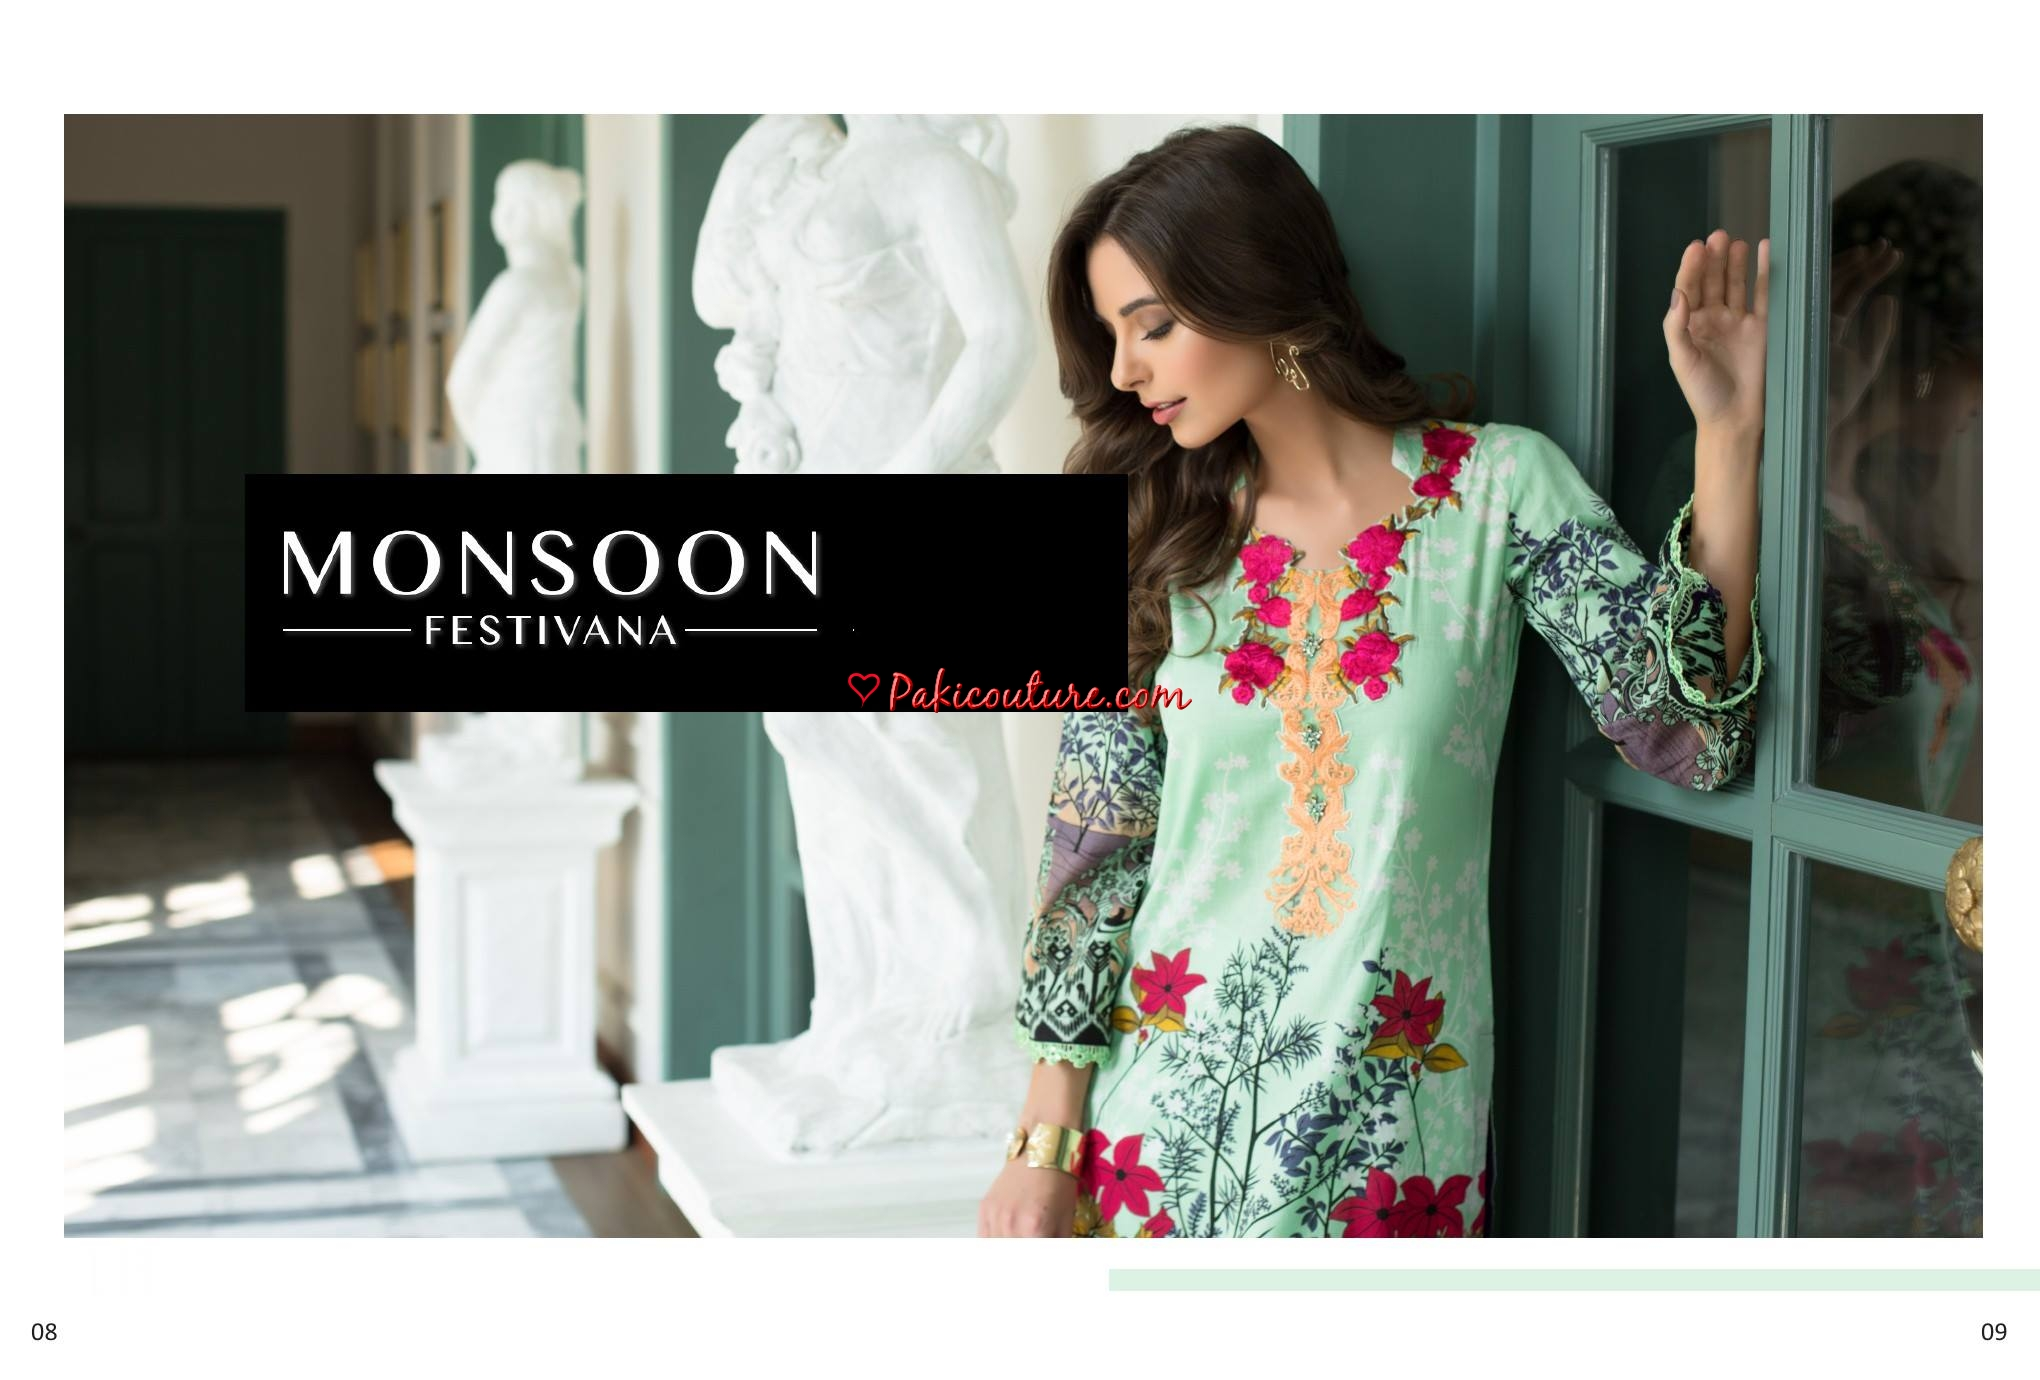 Monsoon Wedding Dresses 2019: Monsoon Festivana Embroidered Lawn Collection 2019